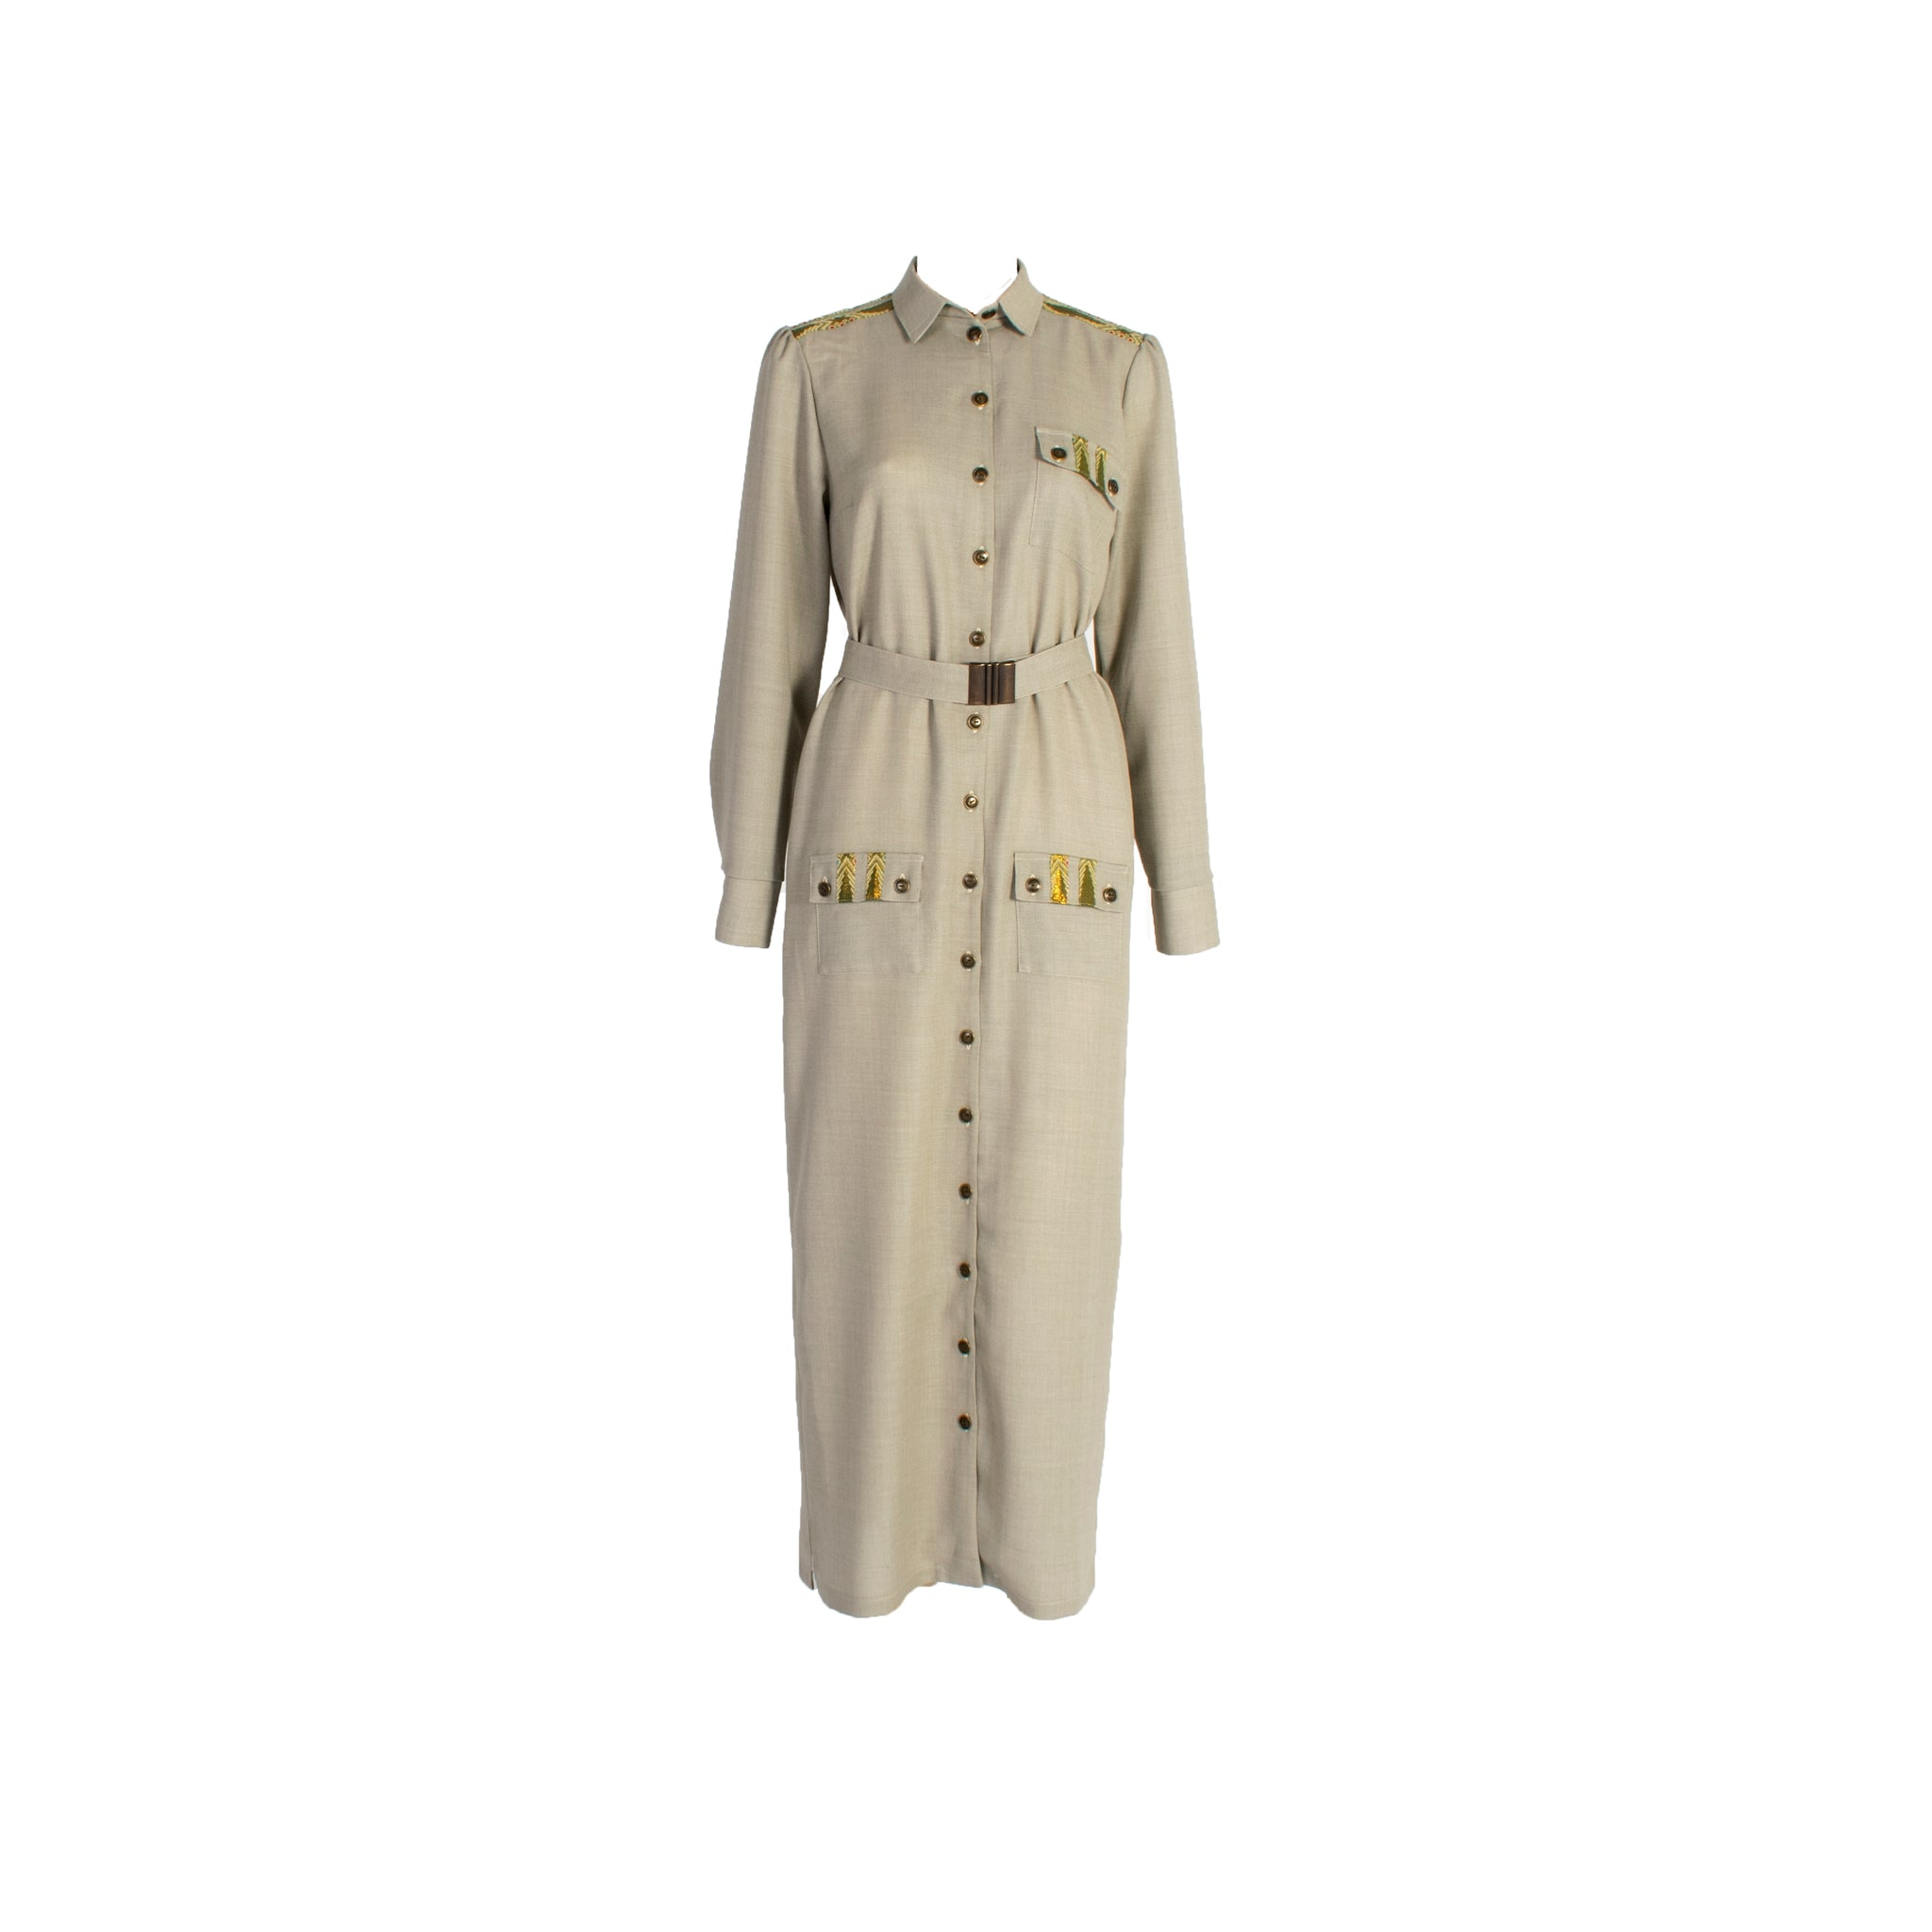 Long Sleeve Wool Button Up Shirt Dress with Chest Pockets